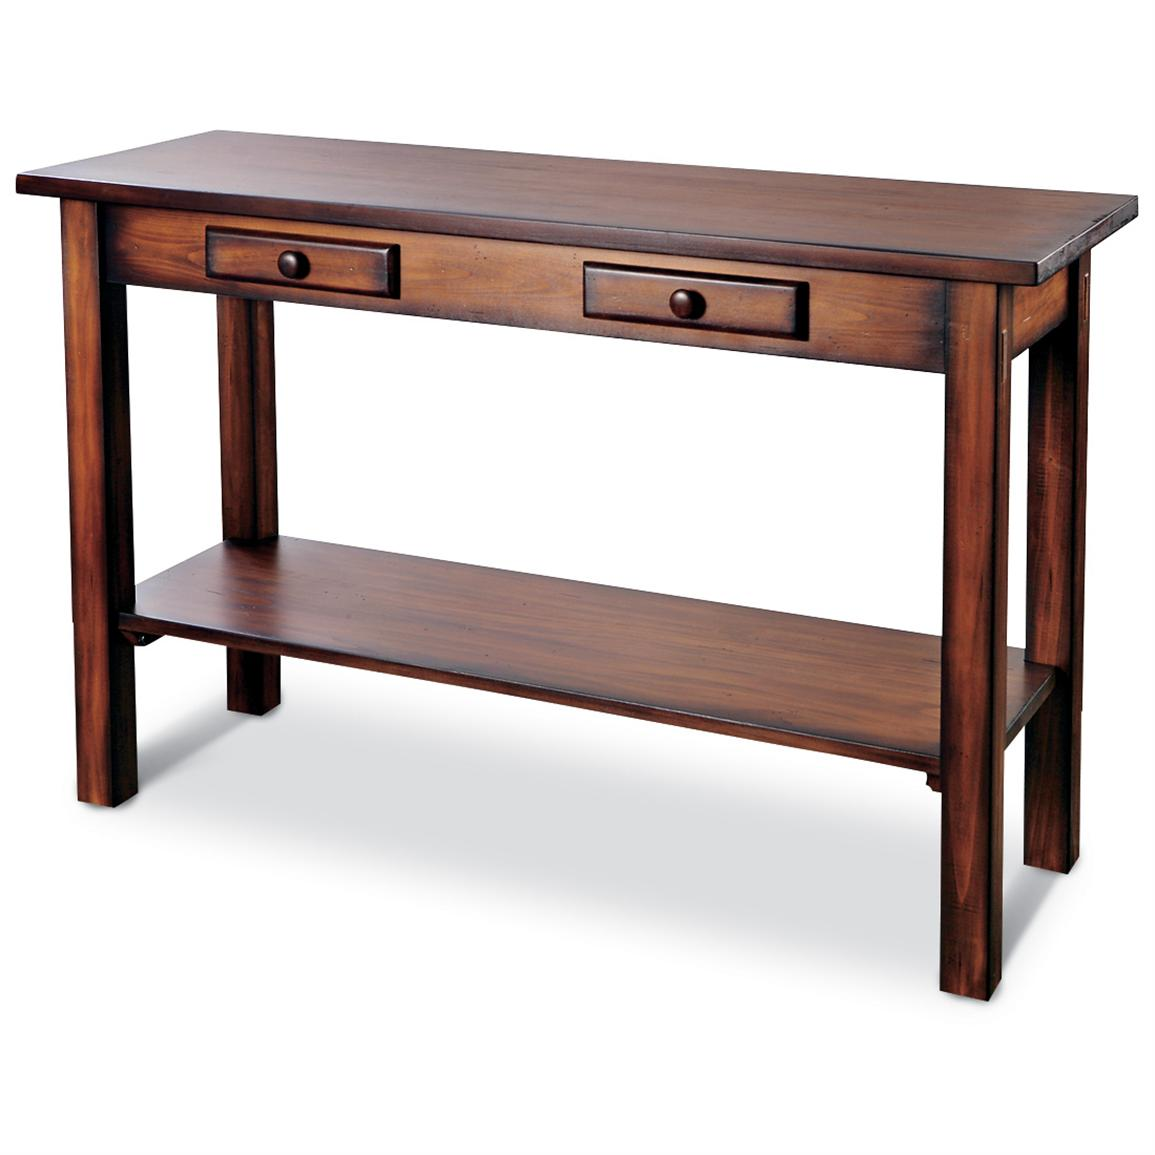 Solid wood rustic console table  living room at